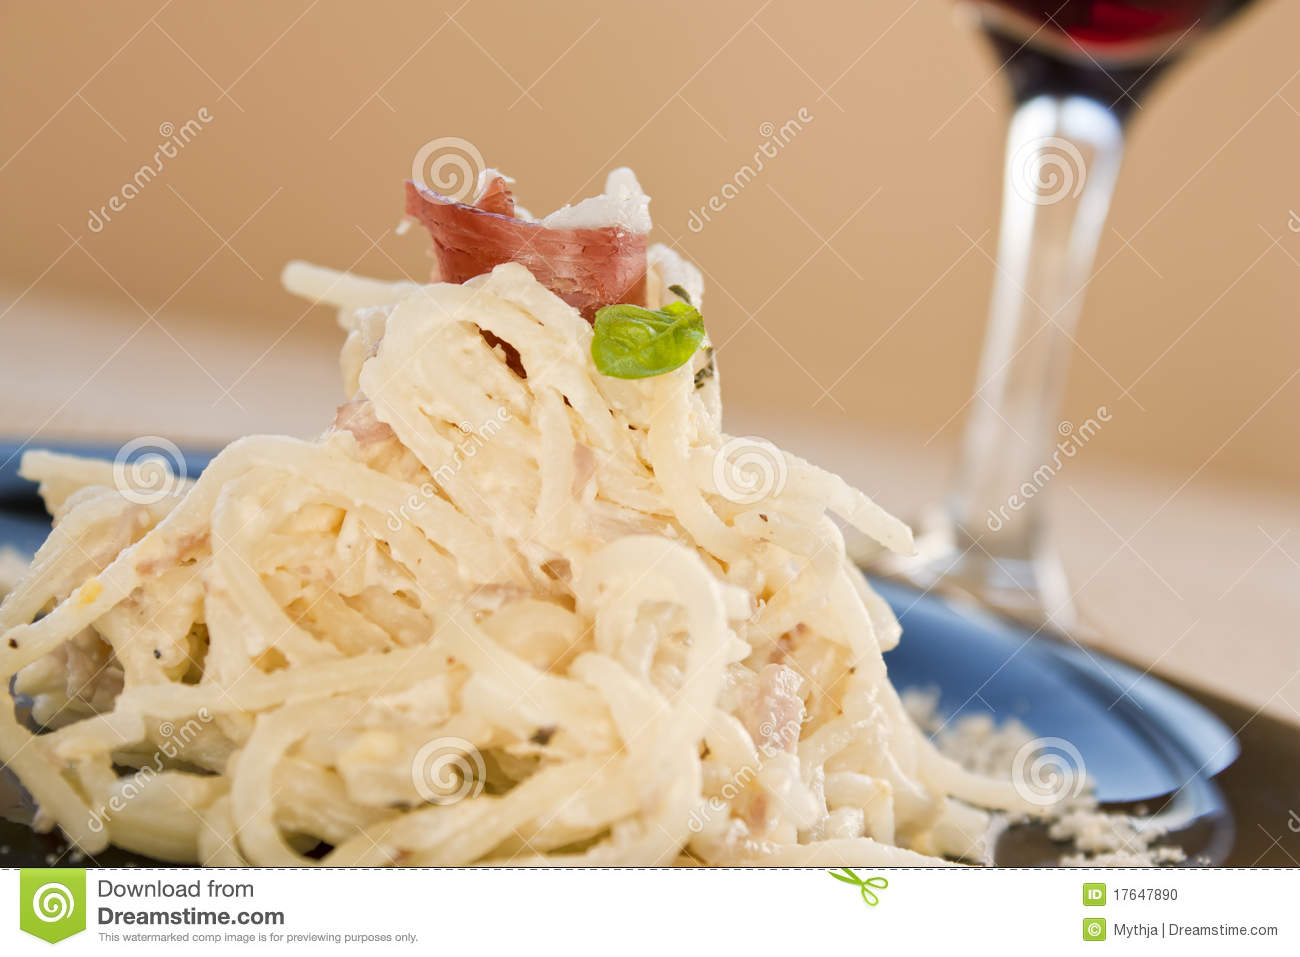 Spaghetti with ham and cream